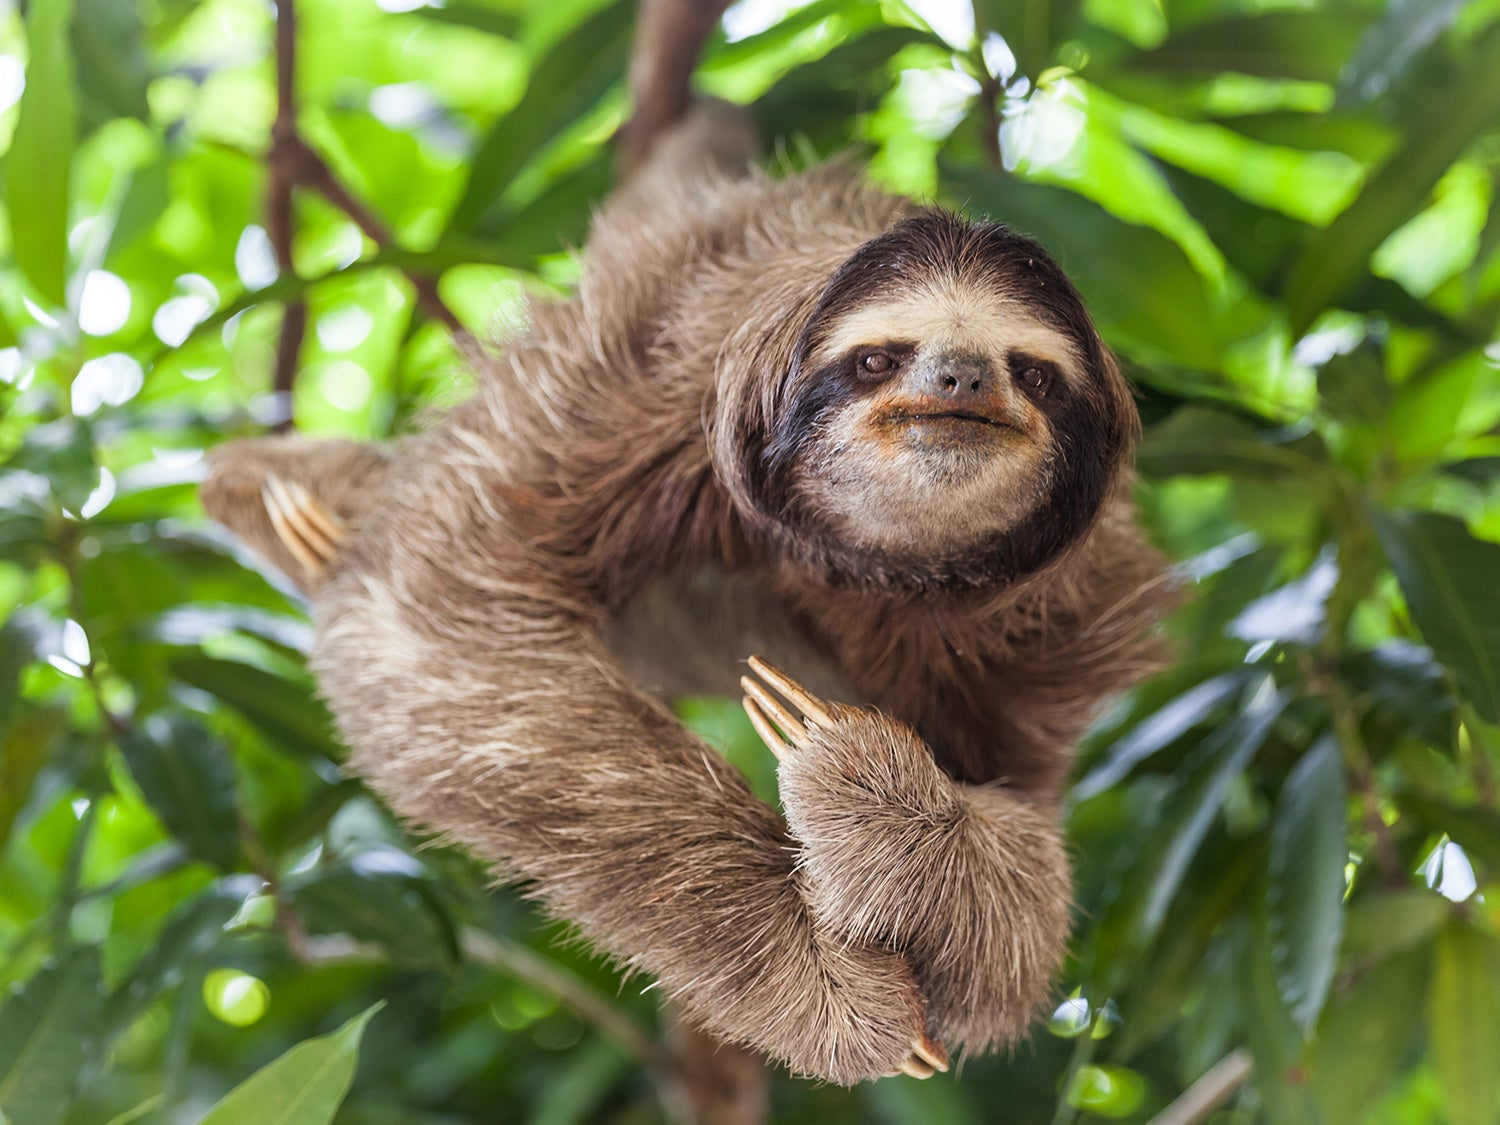 Face to face with the sloth